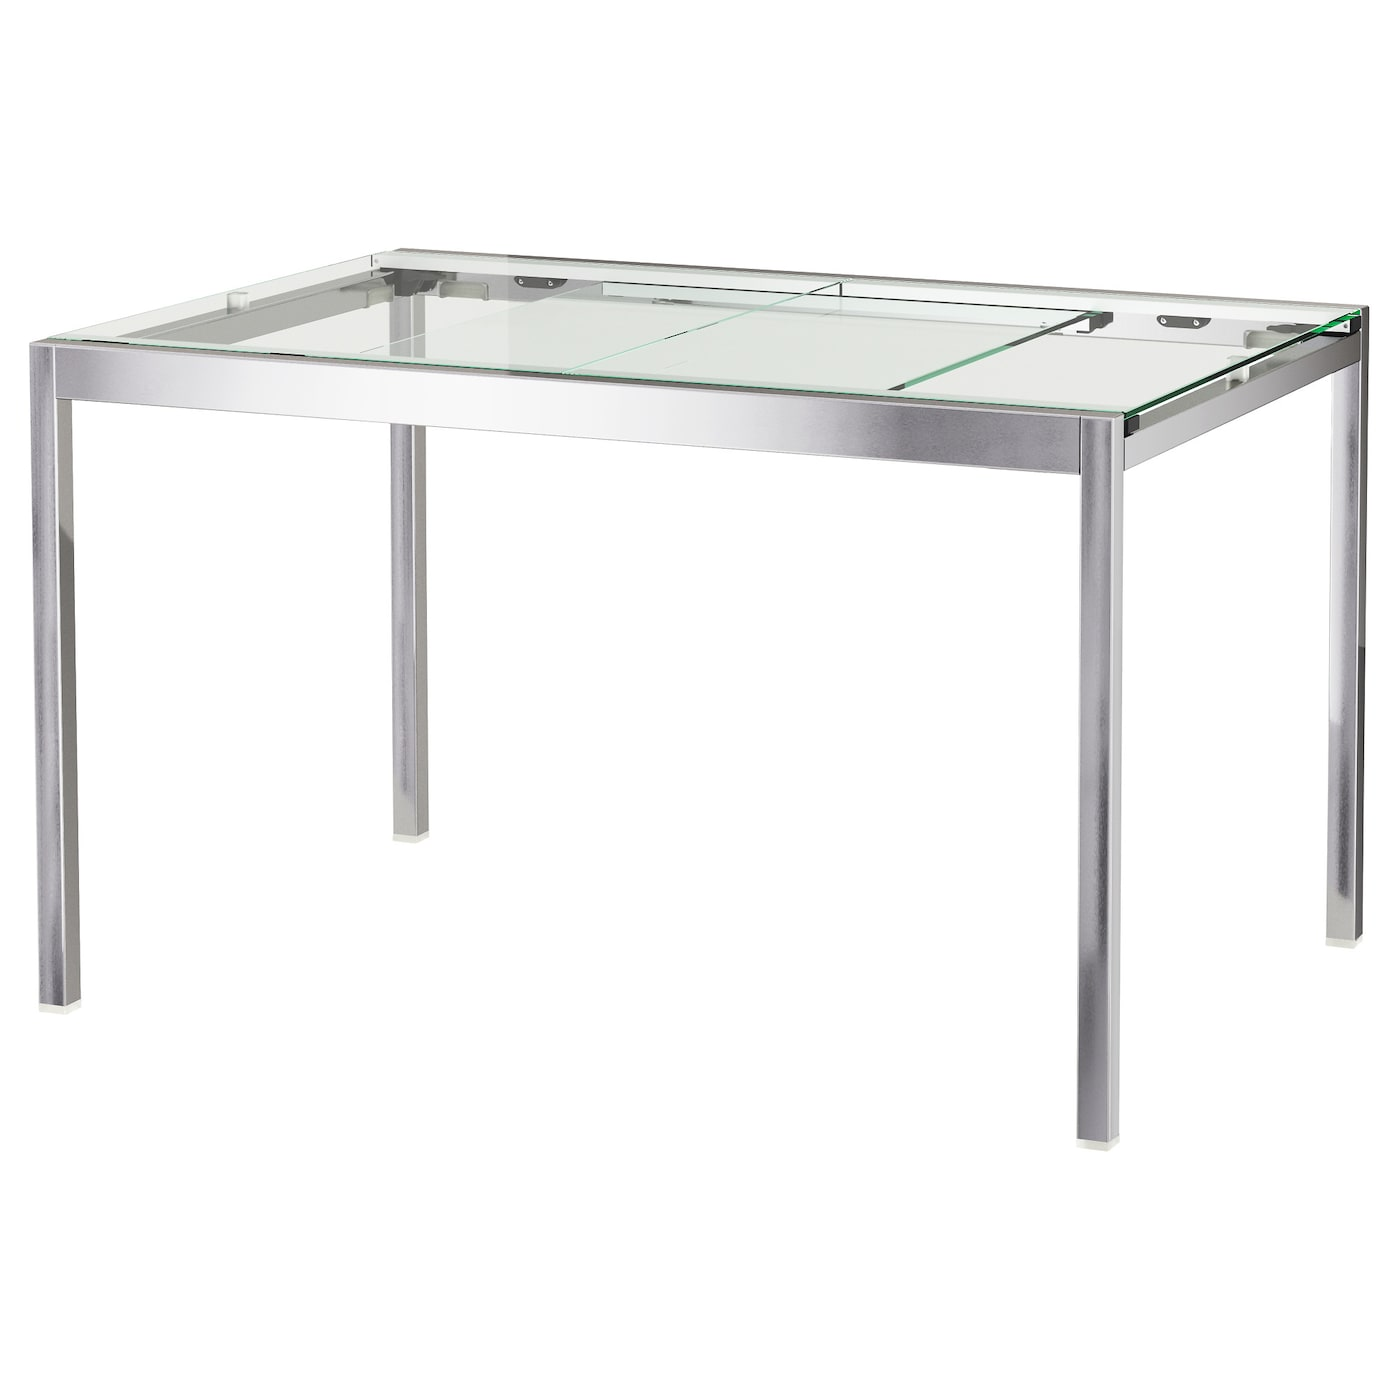 Ikea dining tables ikea ireland dublin - Ikea table salle a manger ...